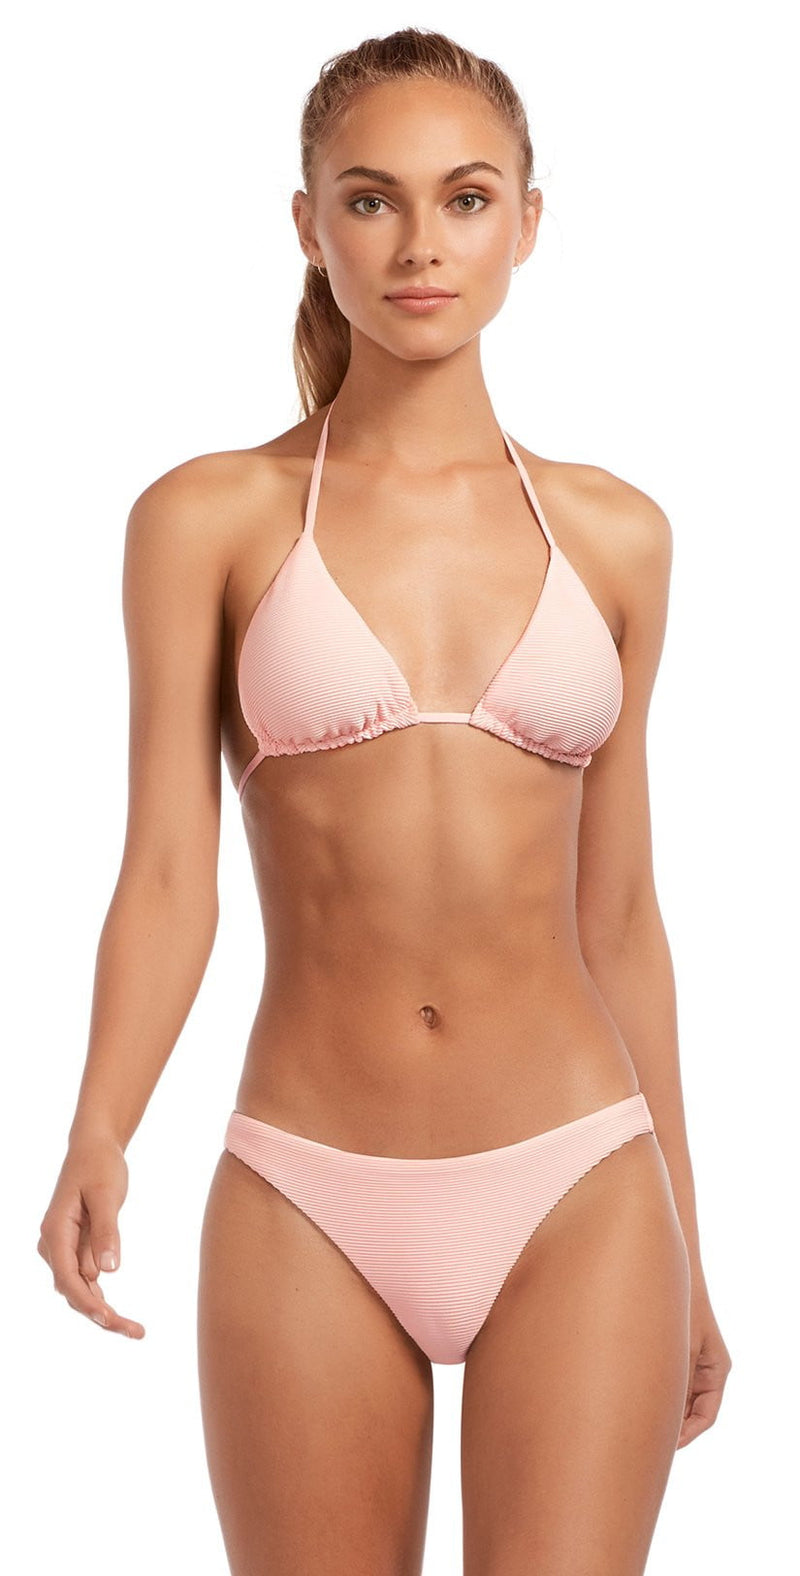 Vitamin A Perla Rose BioRib Luciana Full Coverage Bikini Bottom 167BF-PBR: